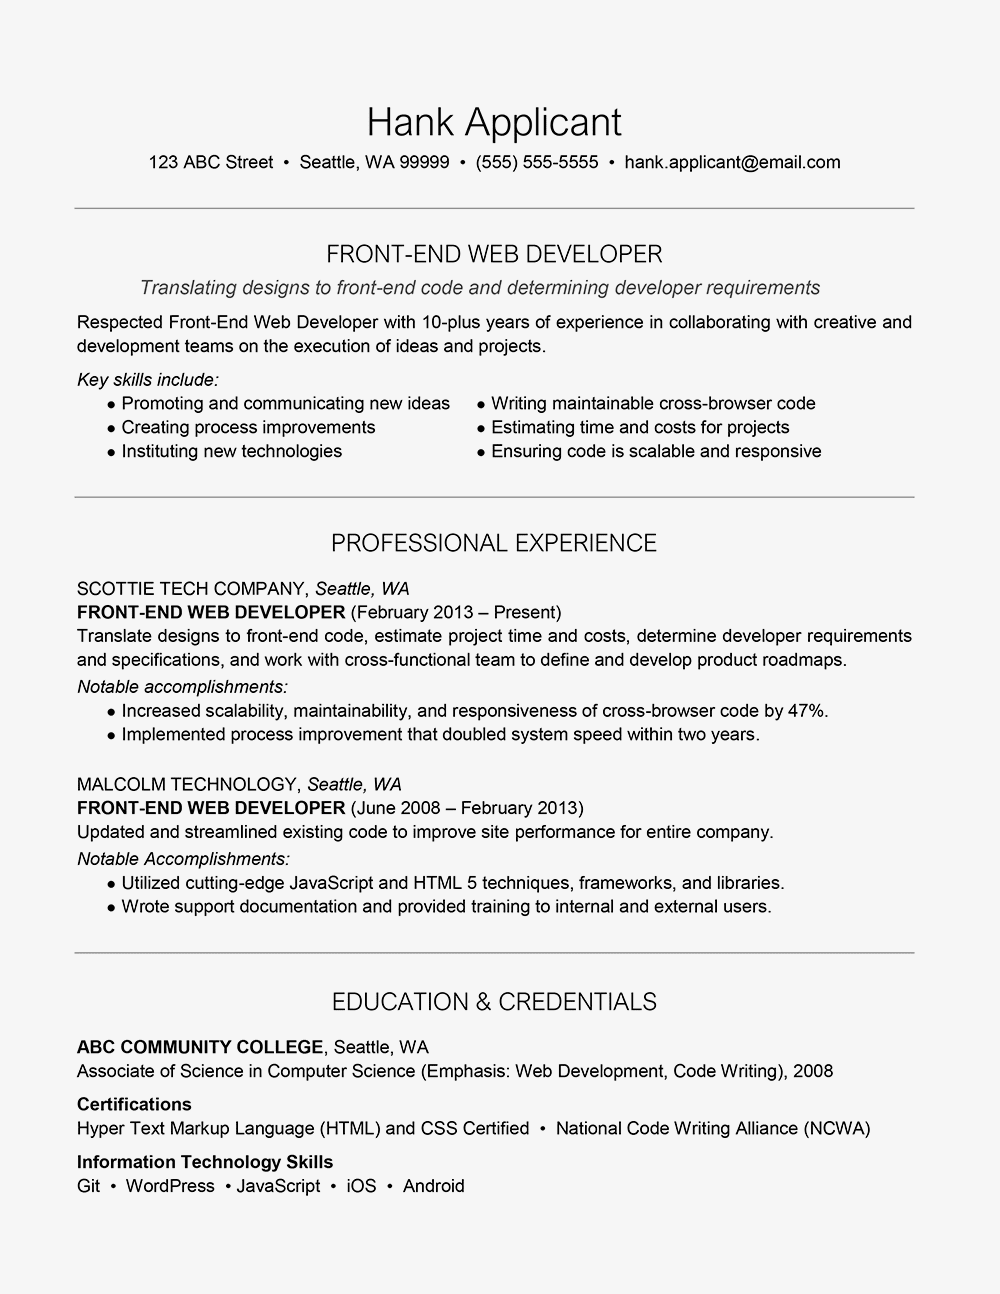 Sample Cover Letter for a Front-End Web Developer